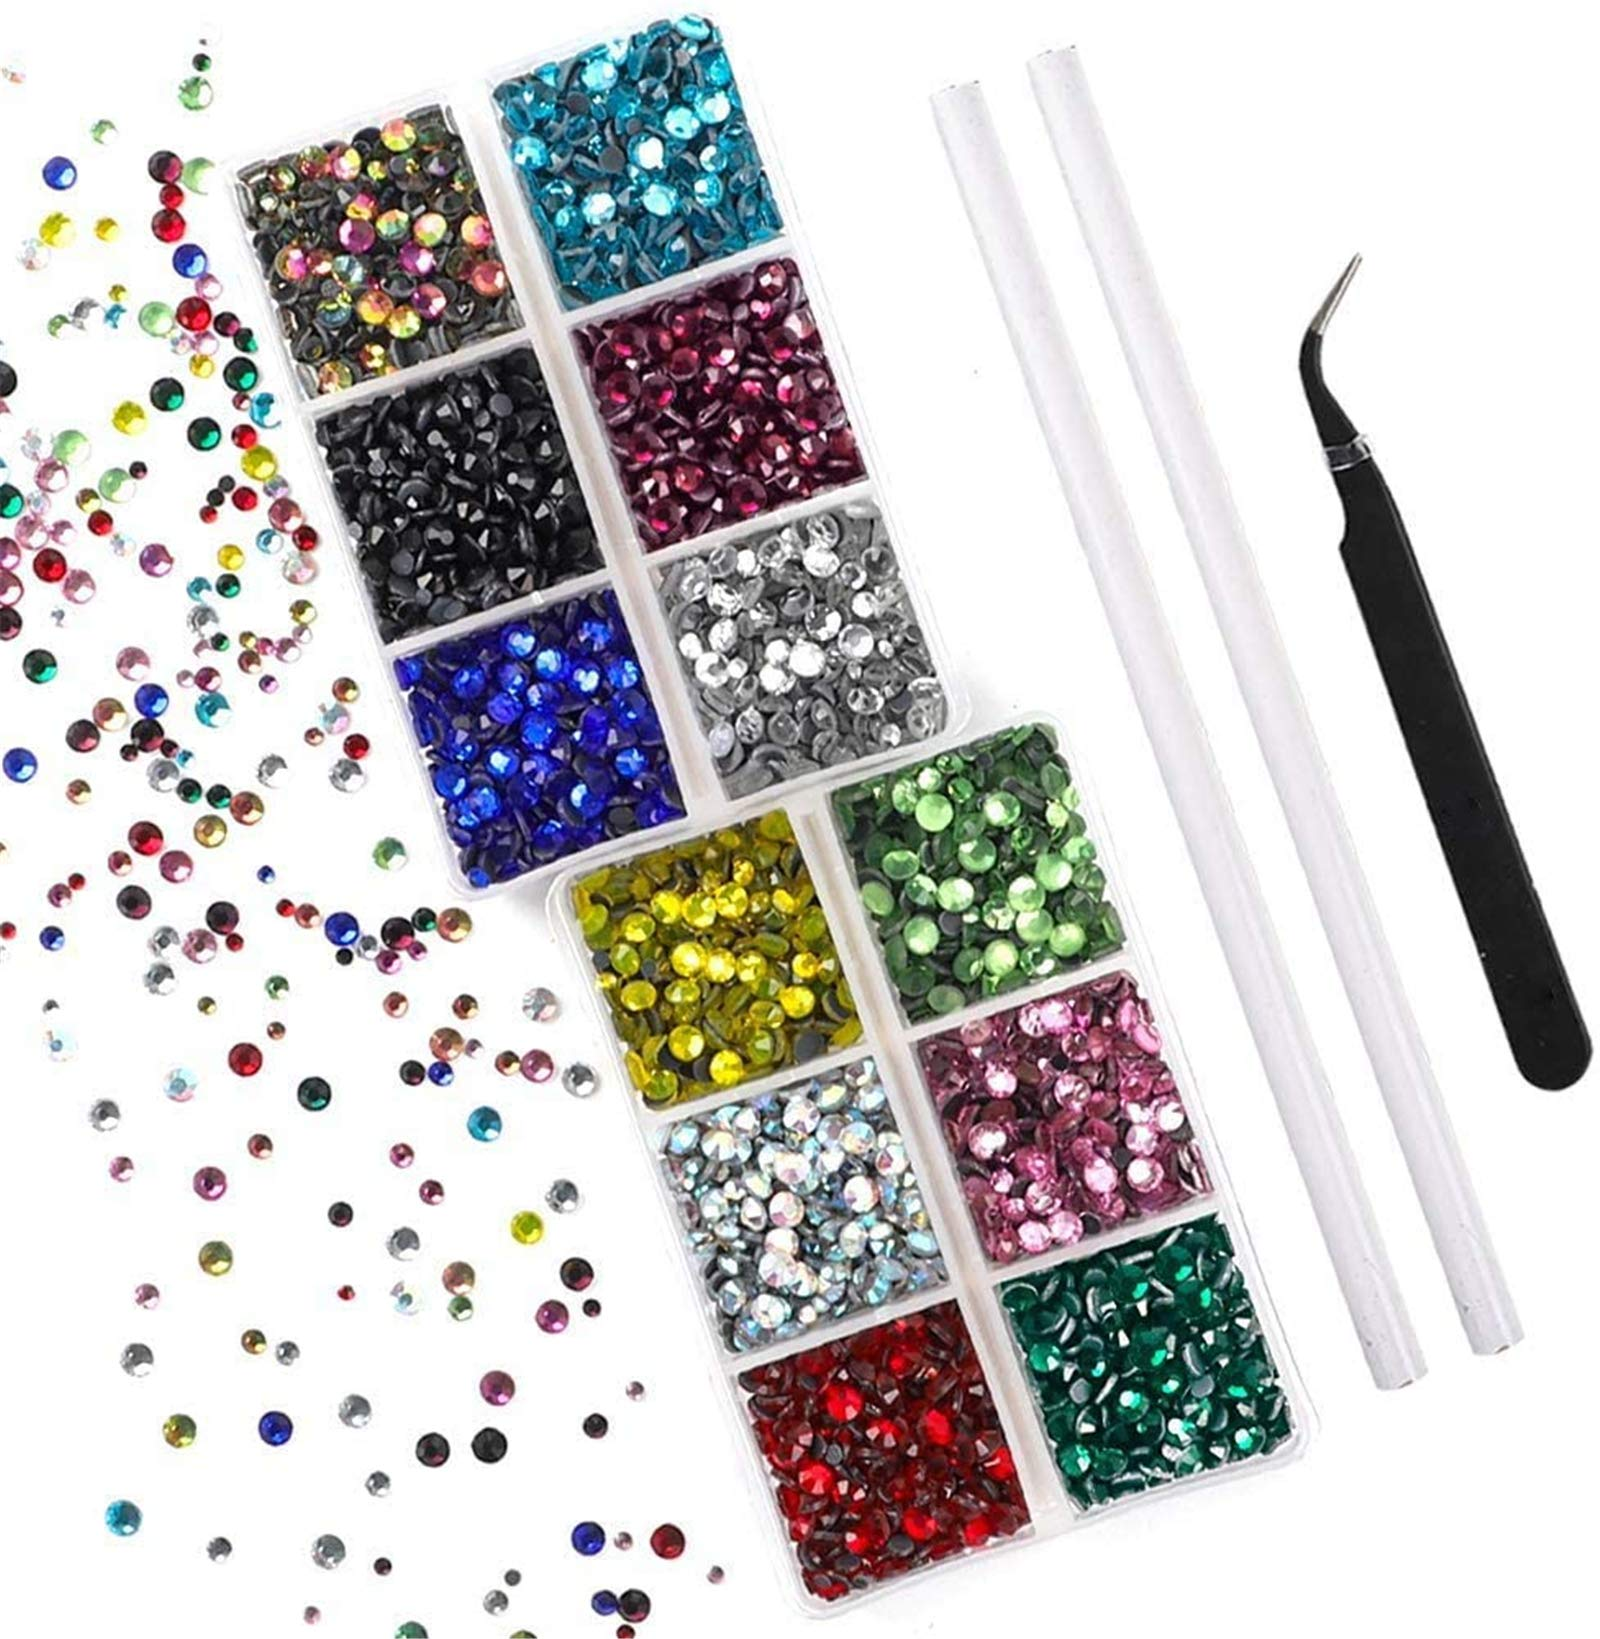 Outuxed 5400pcs Hotfix Rhinestones, 12 Colors Flatback Rhinestones Set for Crafts with Tweezers and Picking Pen, 3 Mixed Size 2-4mm